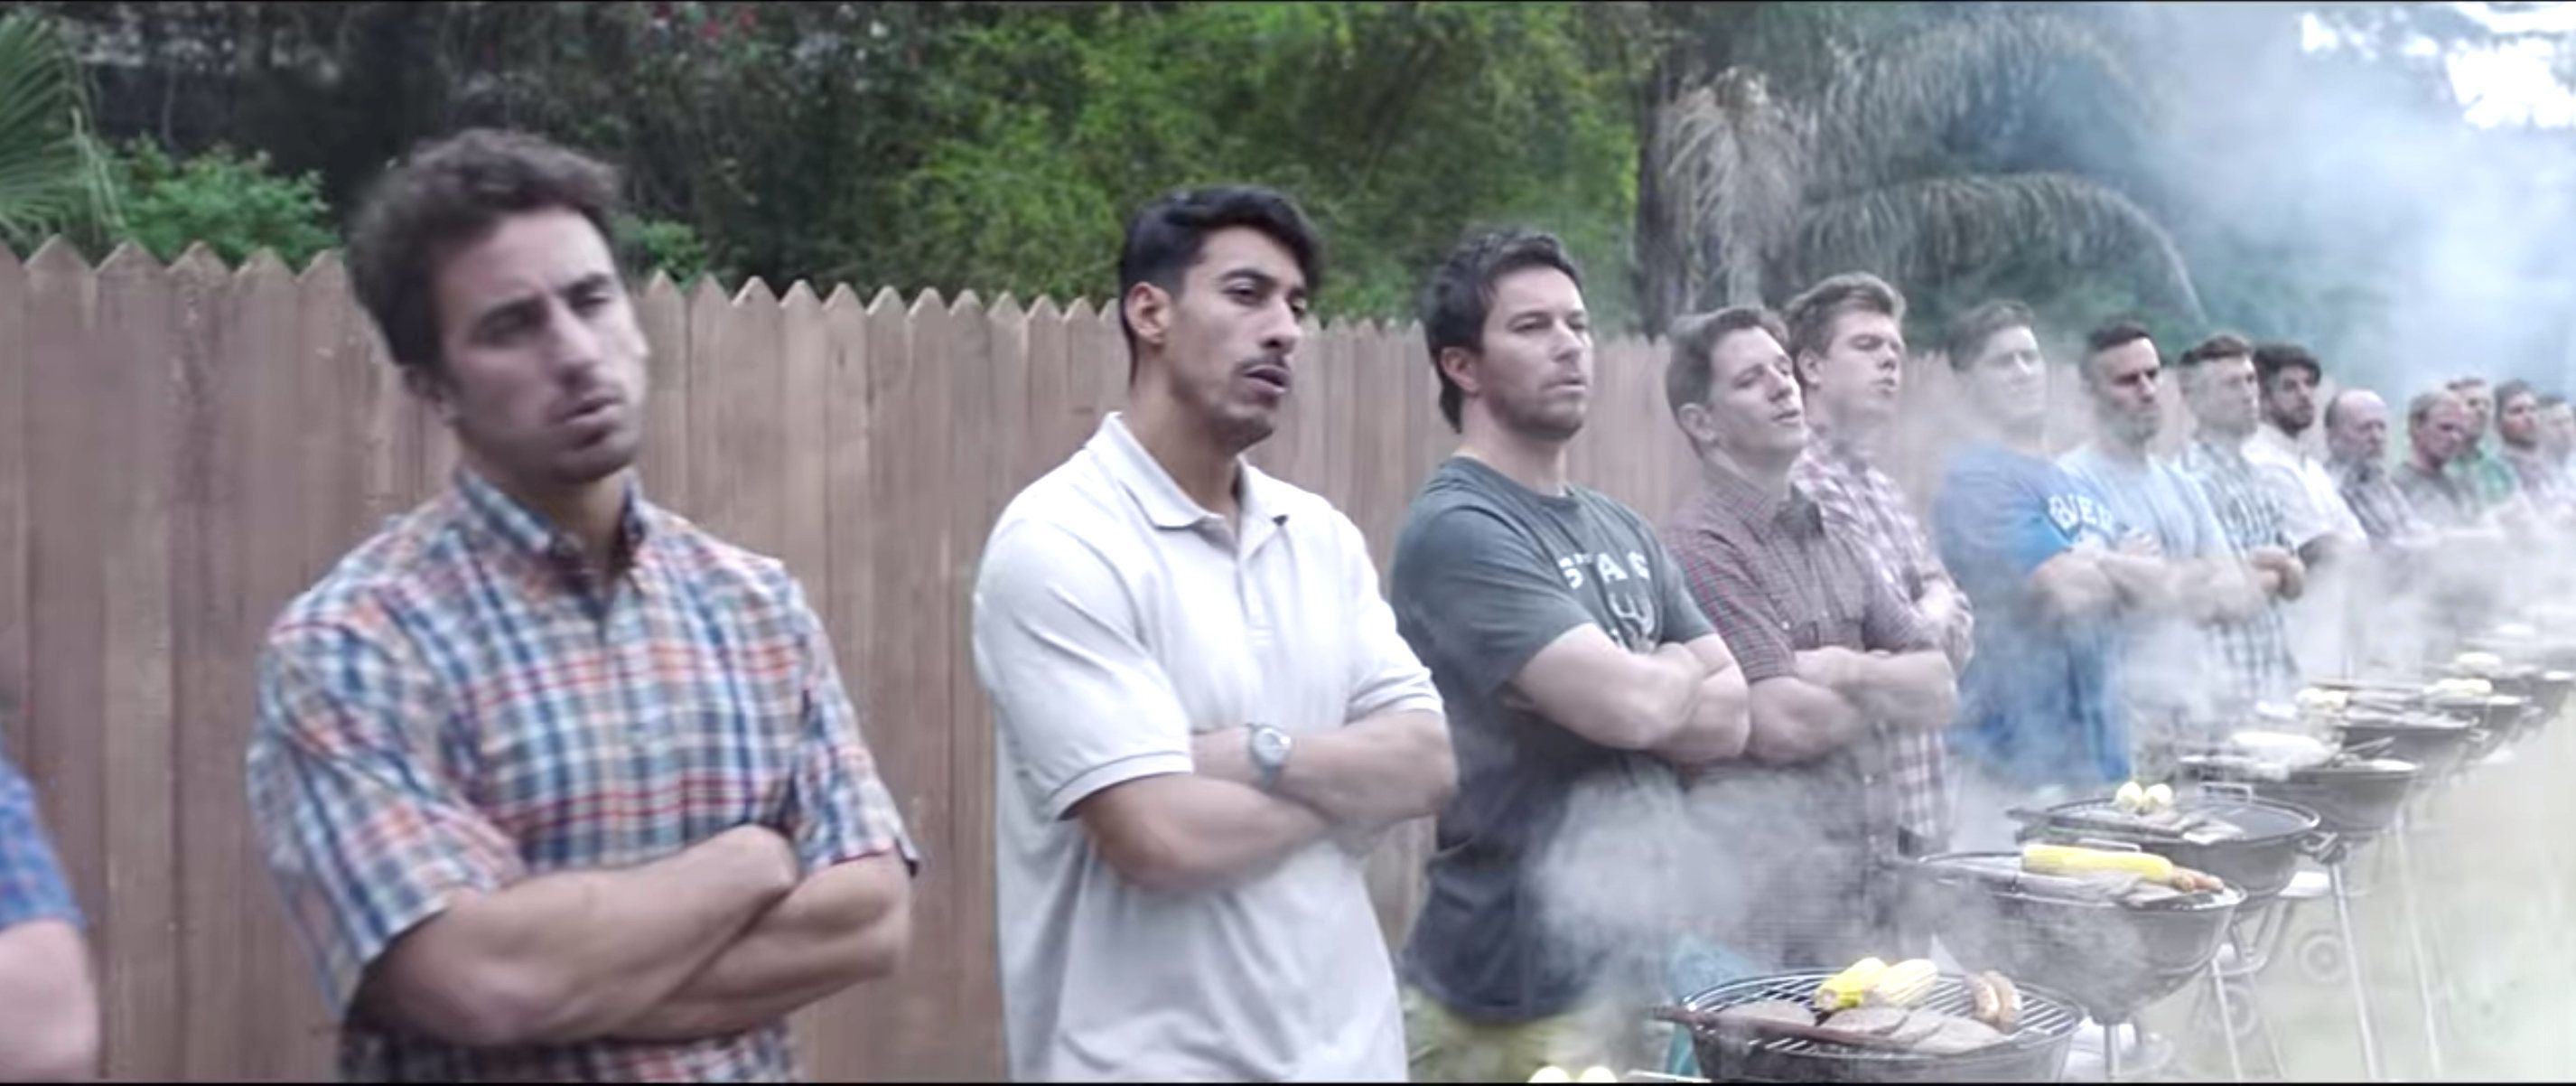 Gillette Takes On 'Toxic Masculinity' In Viral Me Too